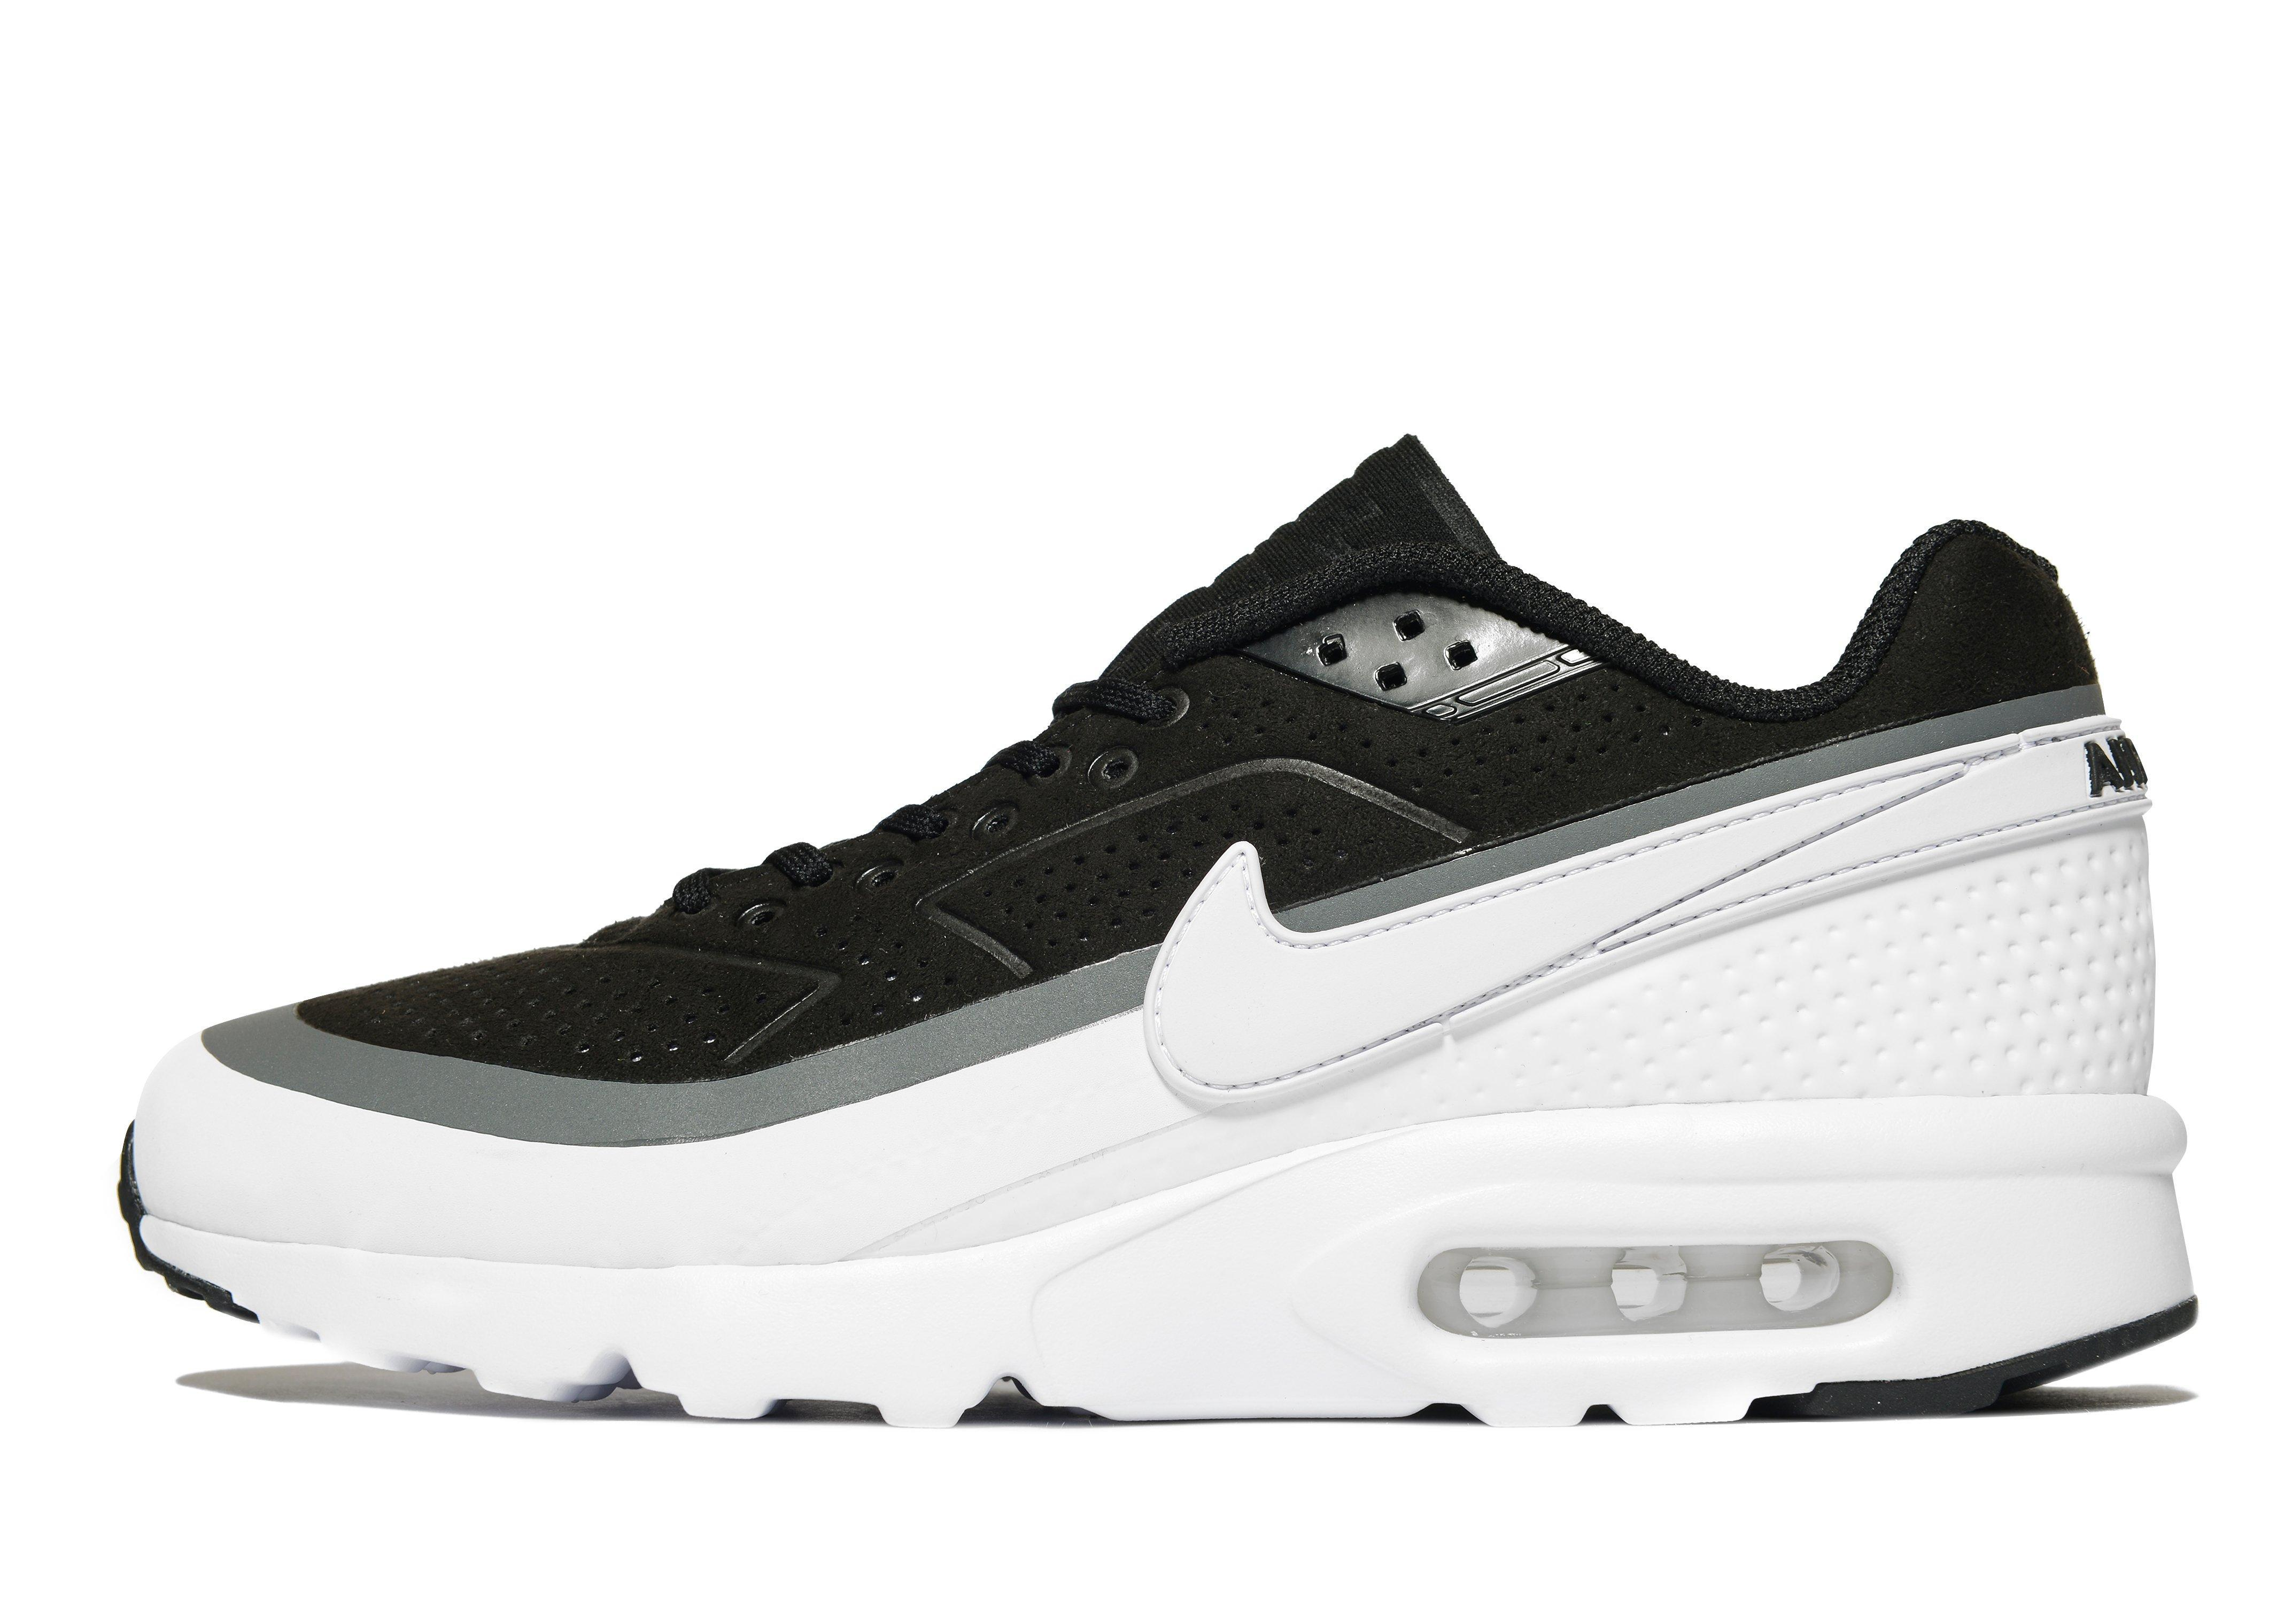 5aefd8d328 ... norway lyst nike air max bw ultra moire in black for men 61292 c7793